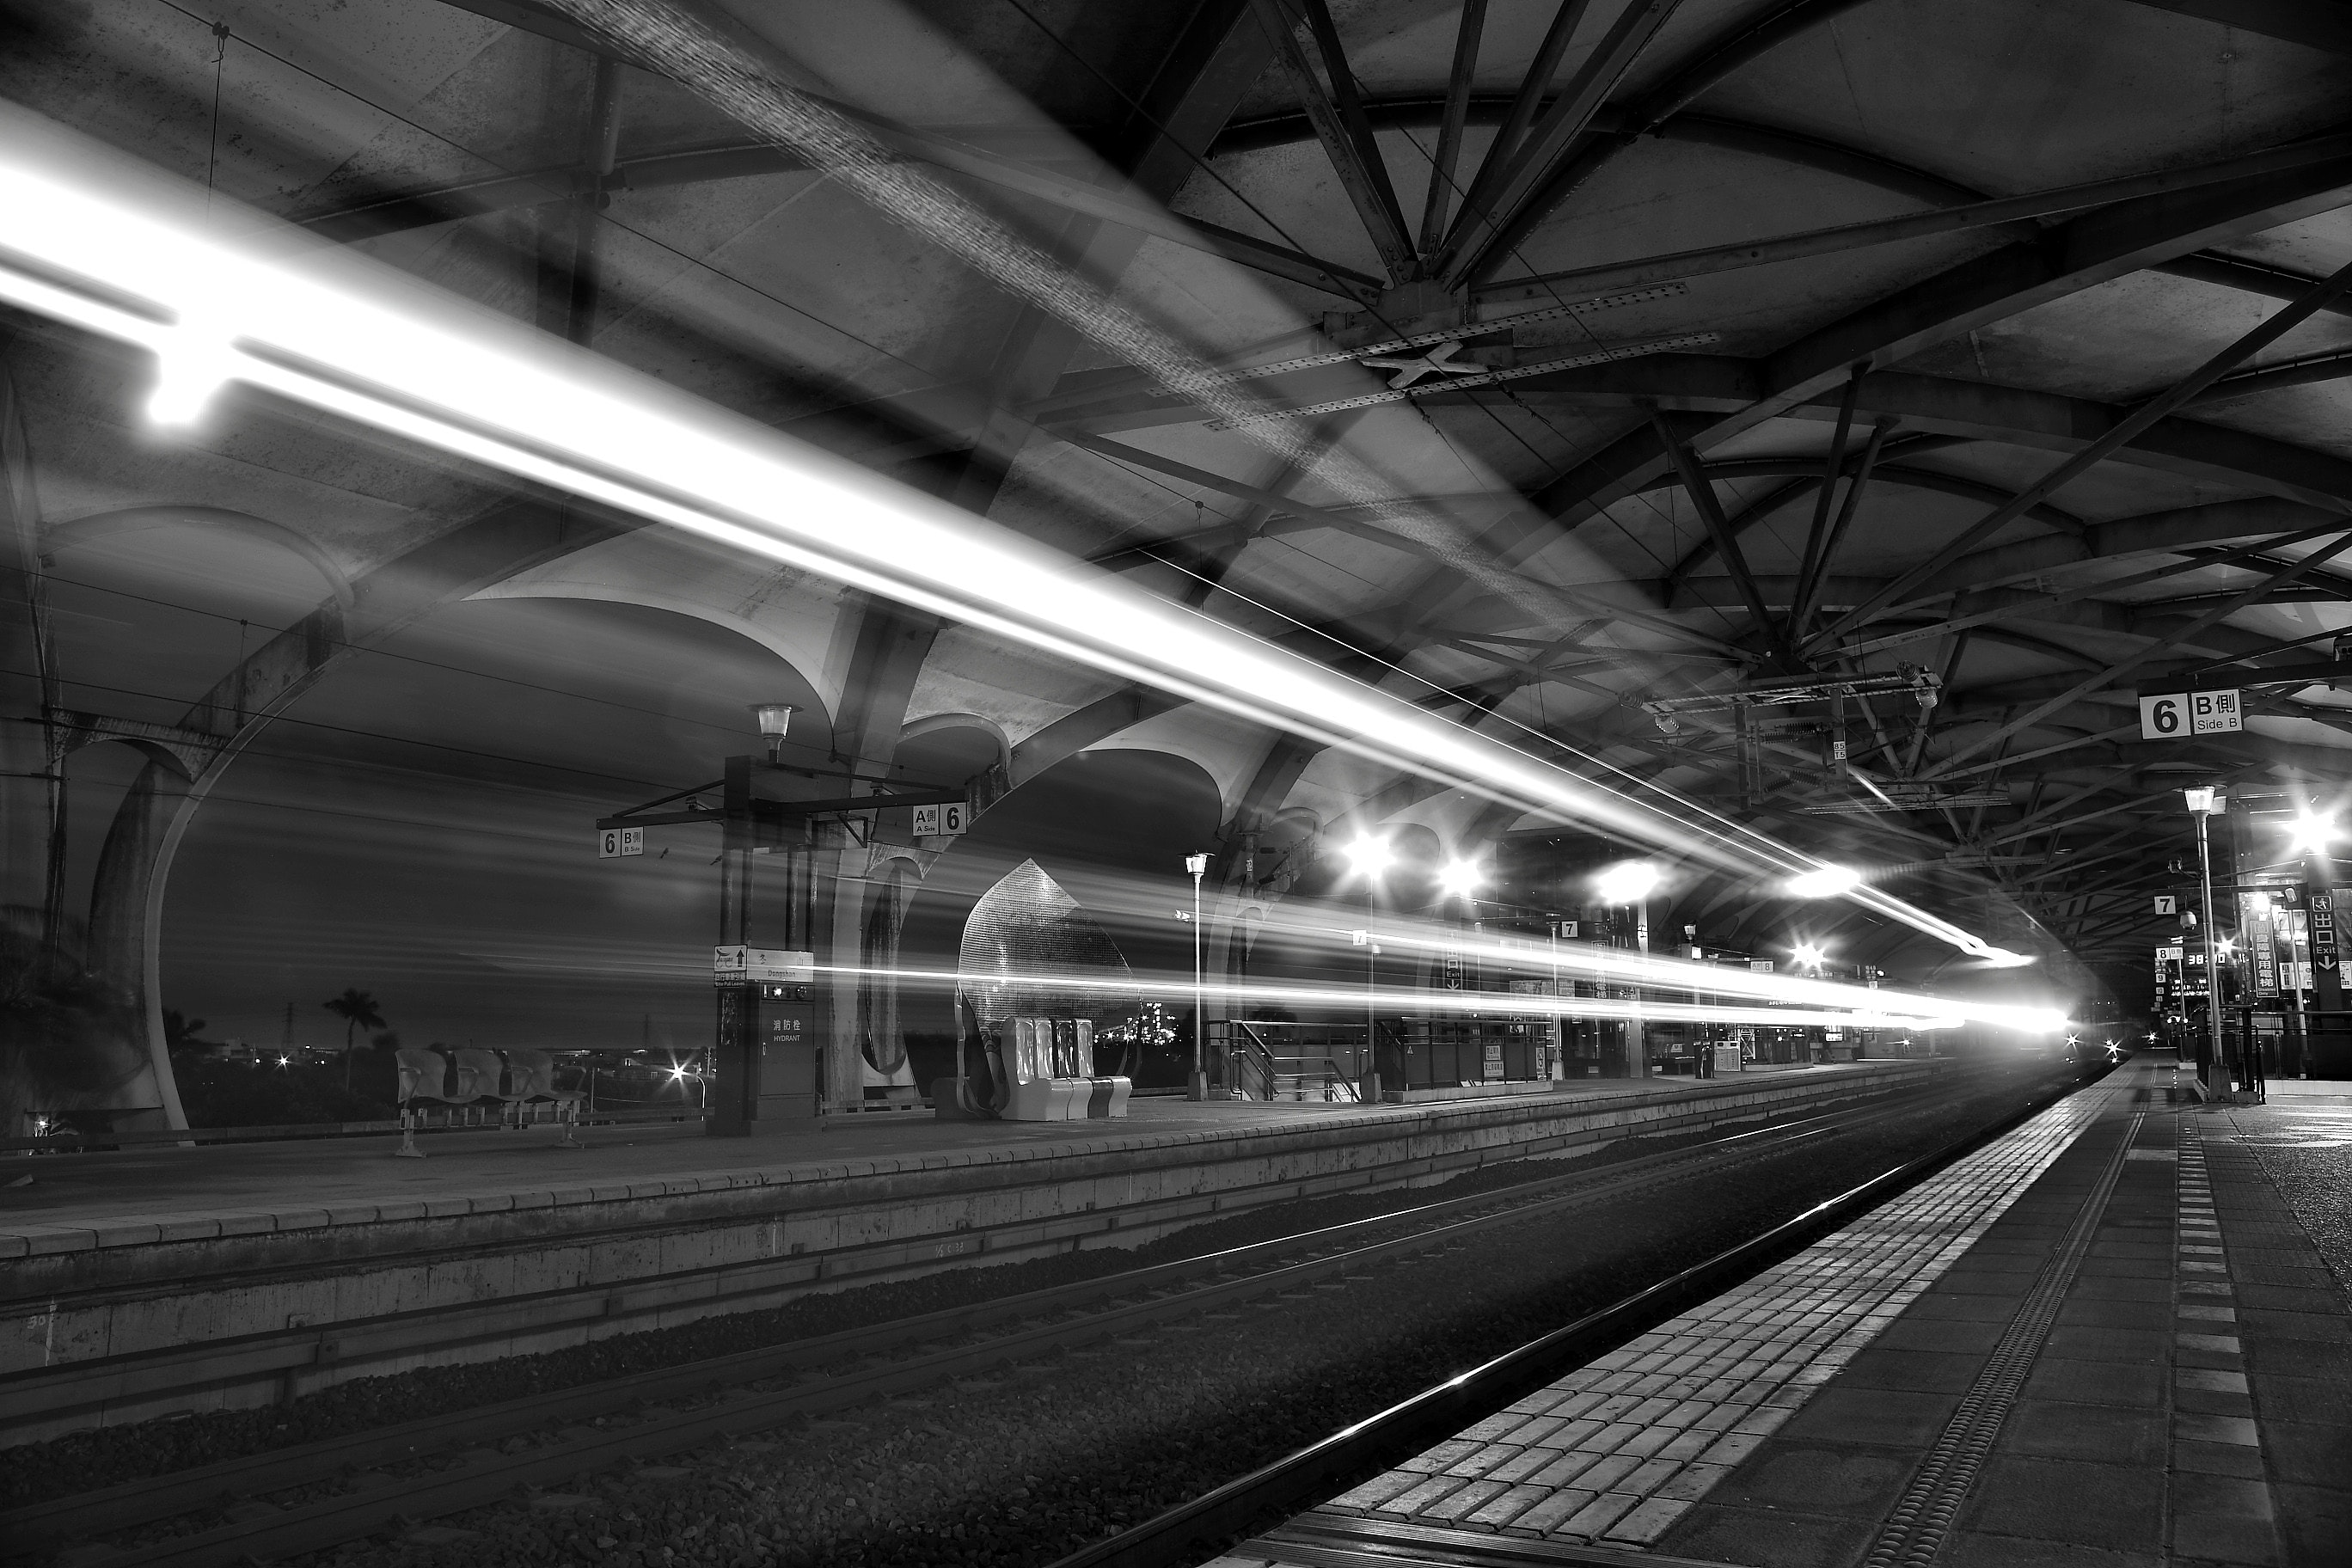 Timelapse Photo of Greyscale Train Passing by, Black-and-white, Light, Light streaks, Perspective, HQ Photo